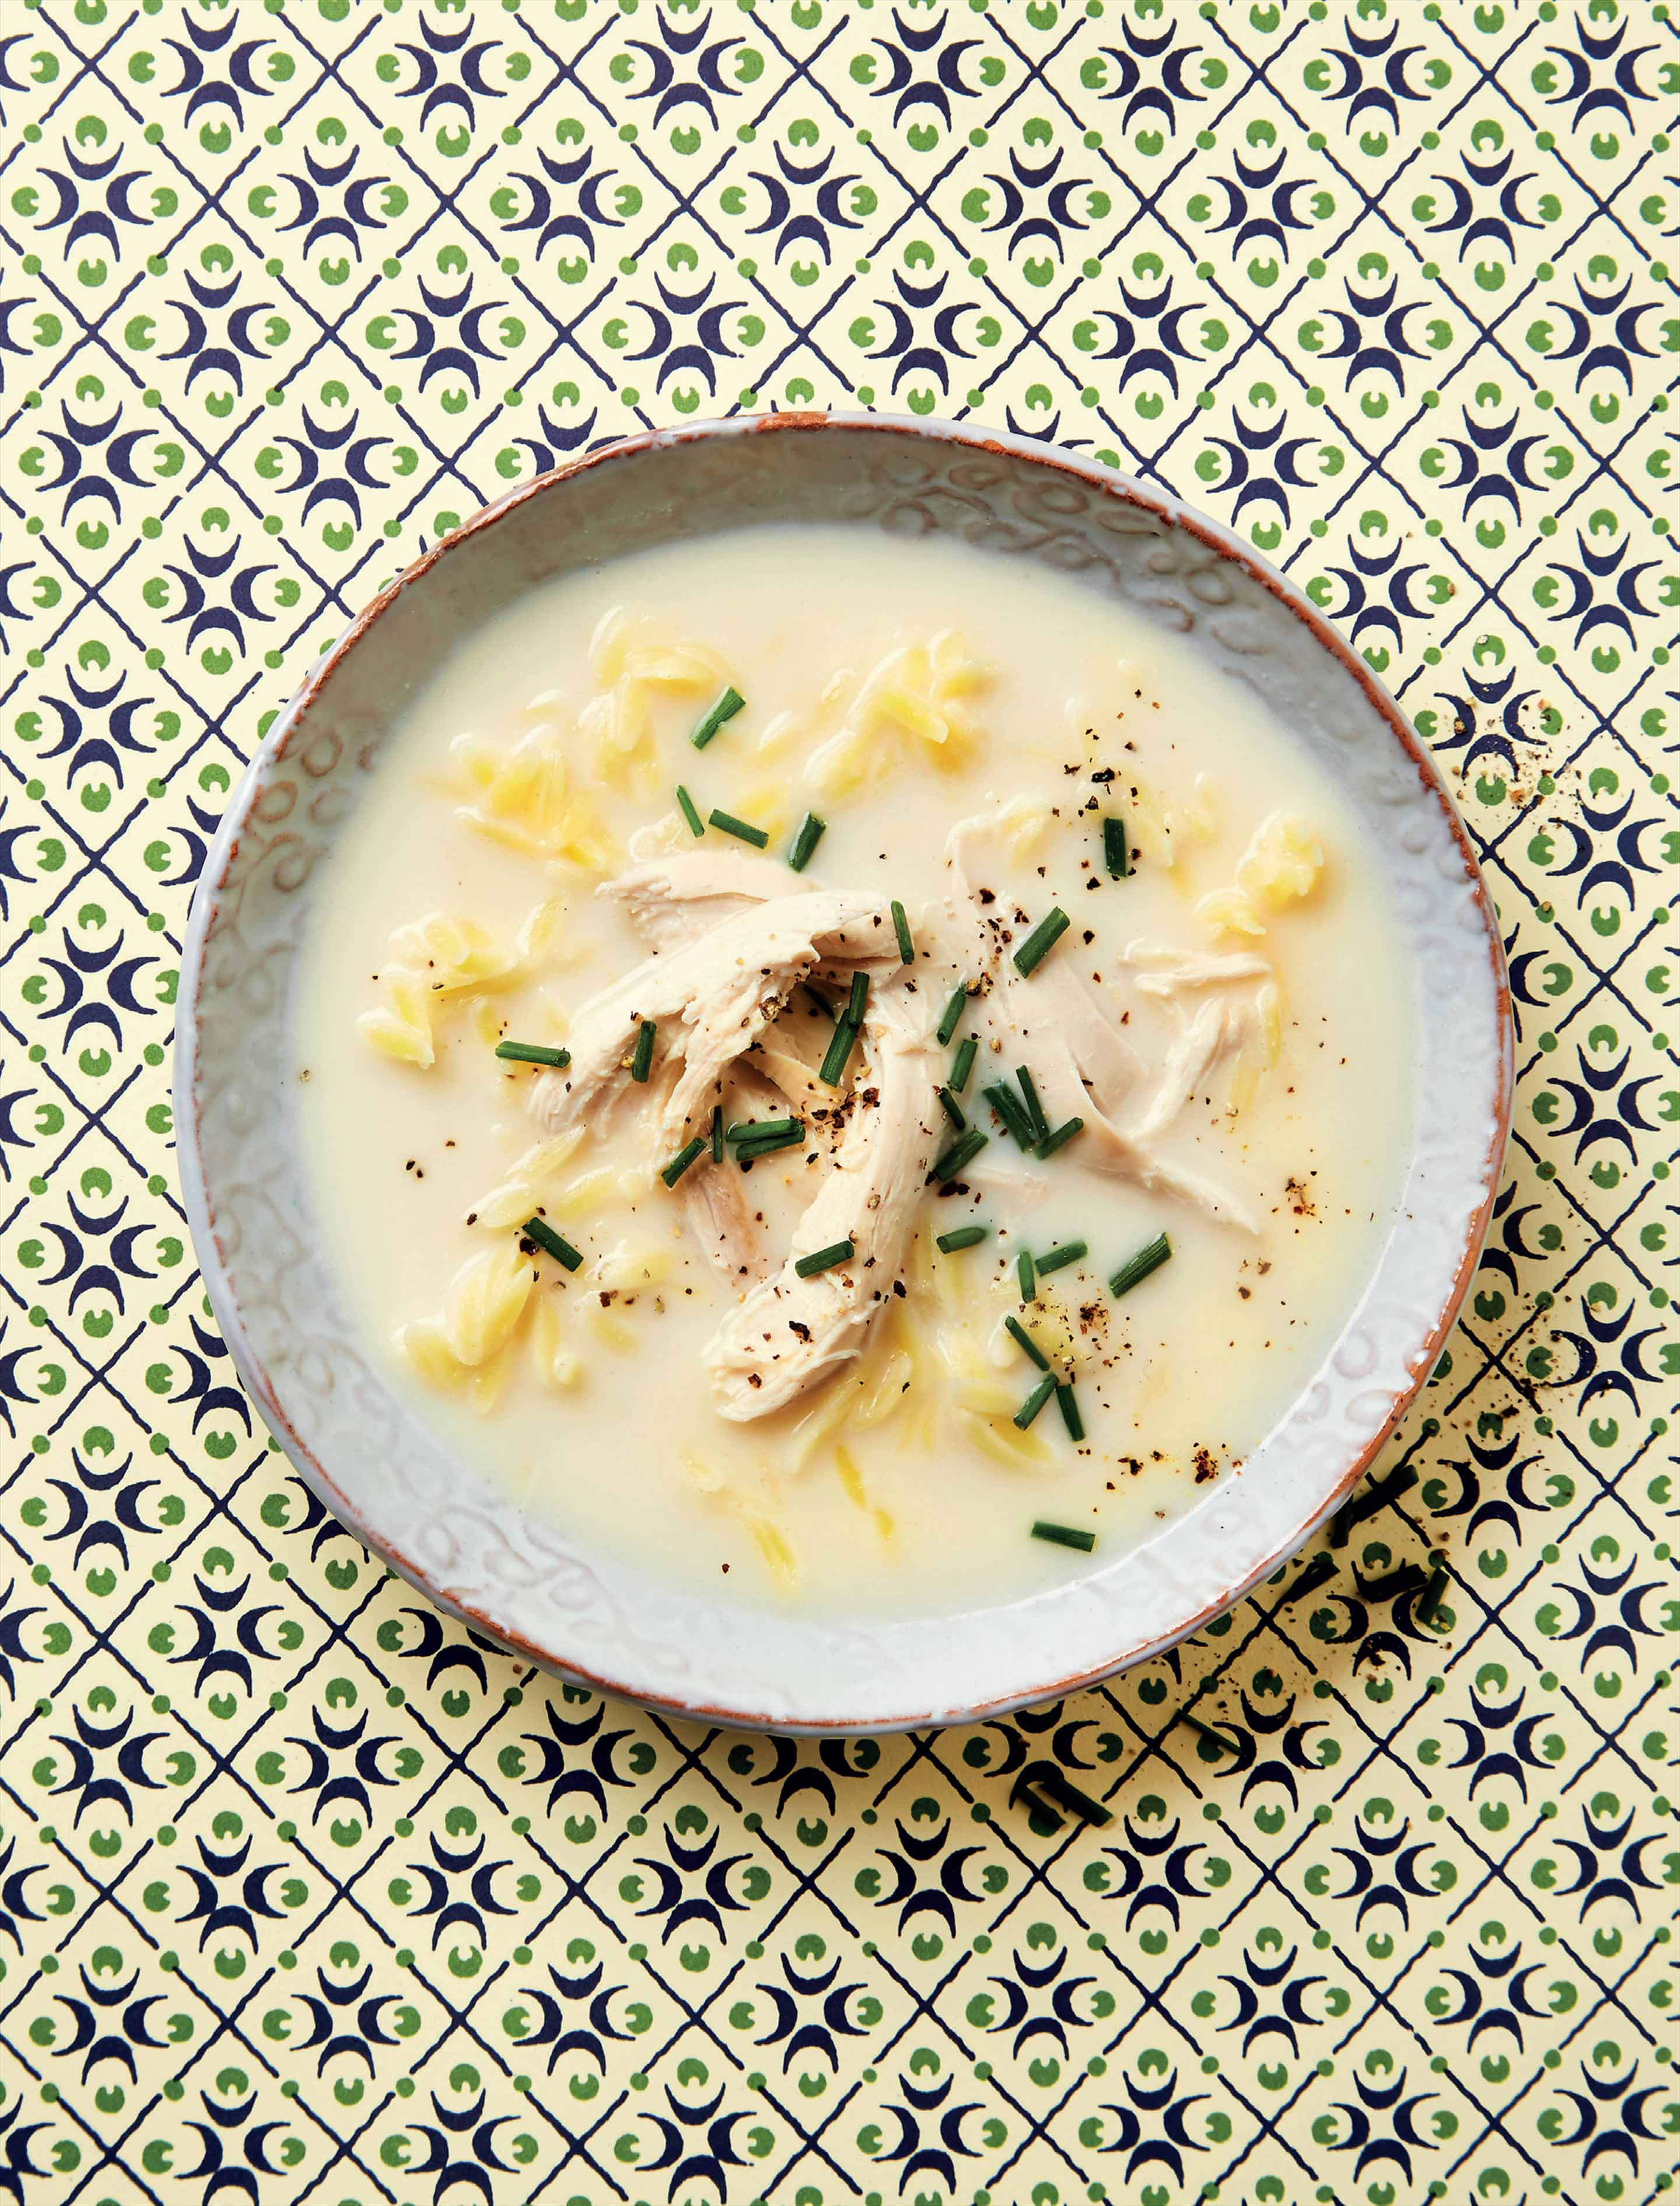 Avgolemono lemon & egg soup